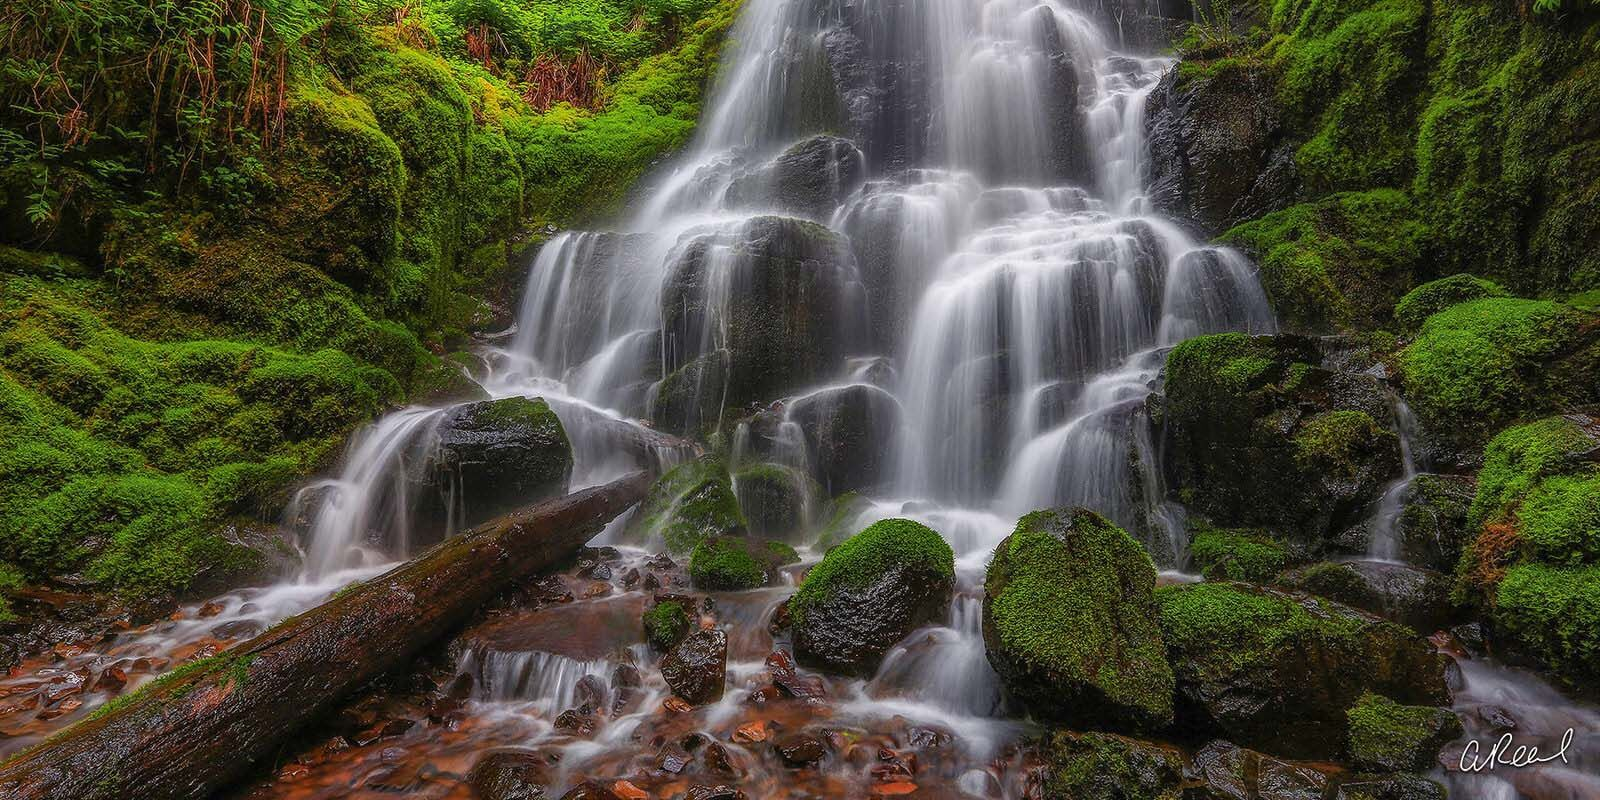 Transform your space with Aaron Reed's luxury fine art photography print, Fairy, from his Panoramic Wall Art collection. Order...